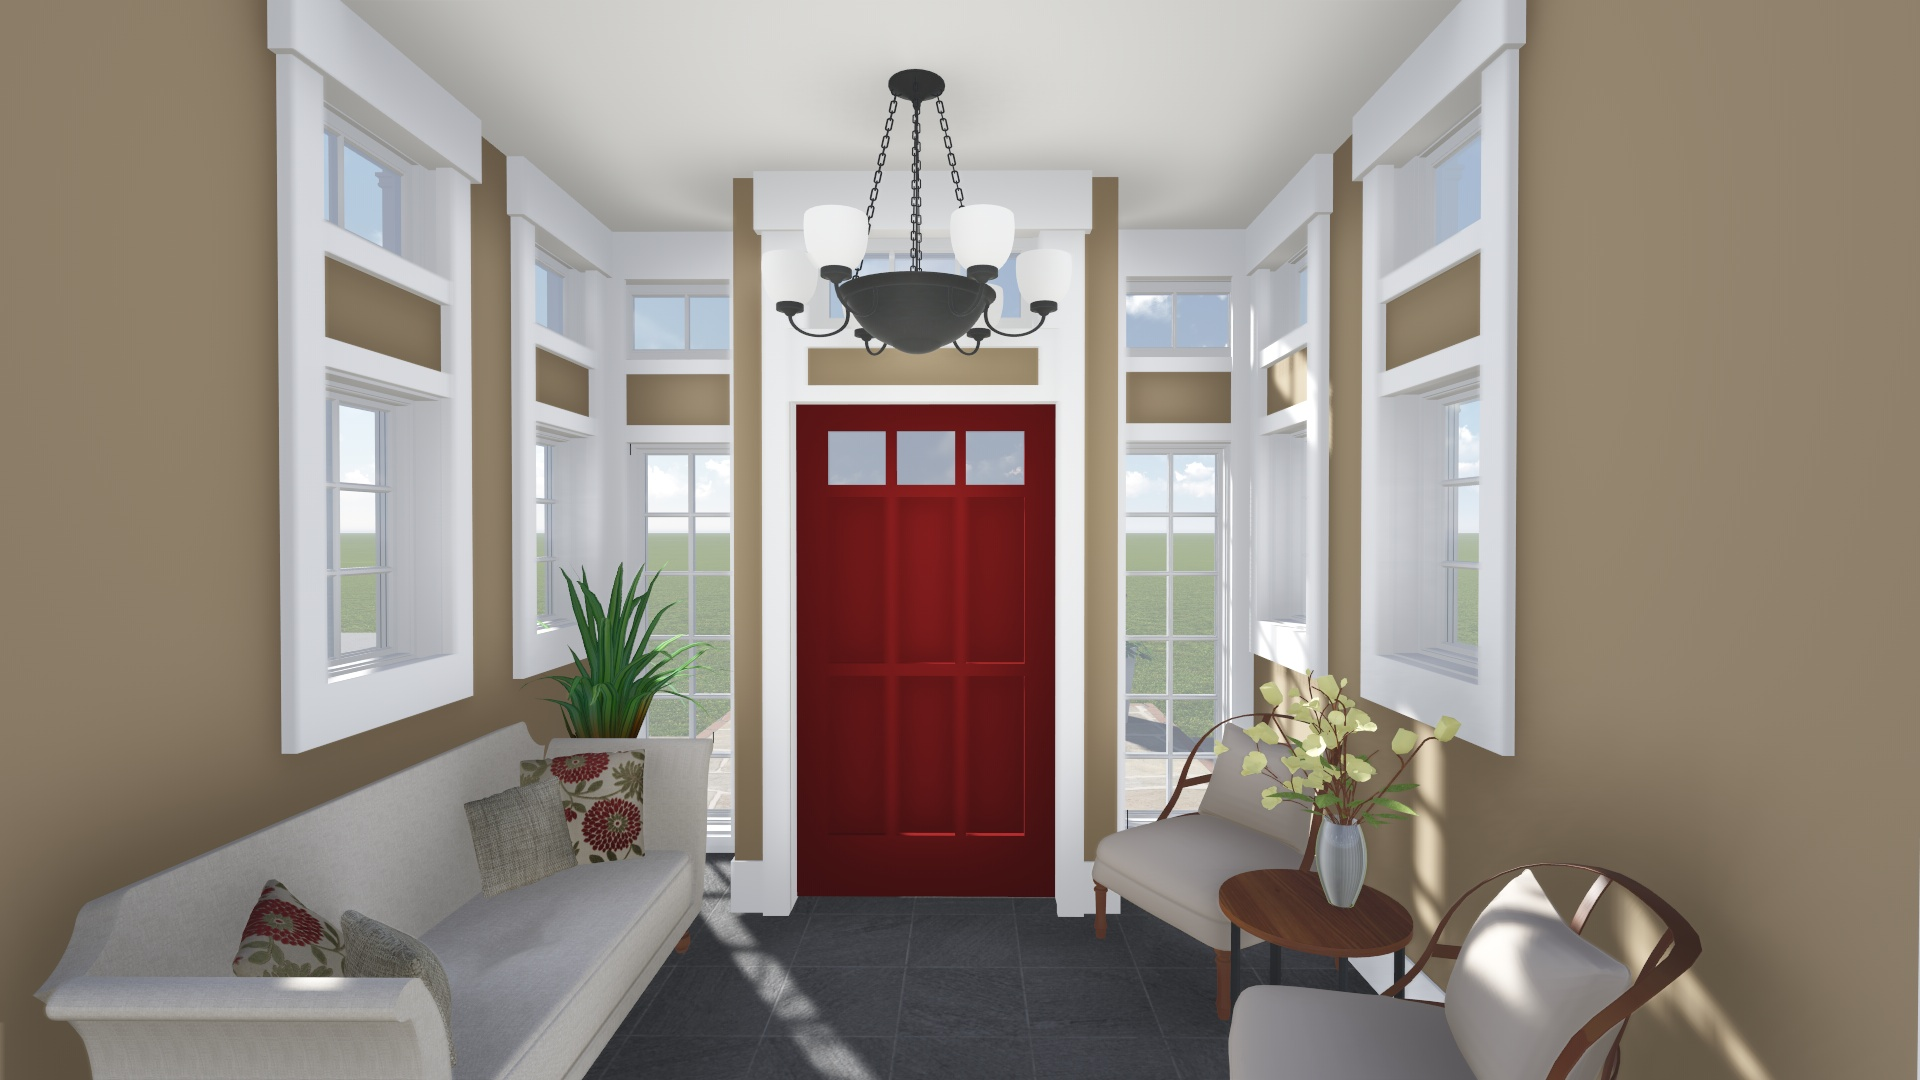 PROCESS: Interior view of entry addition